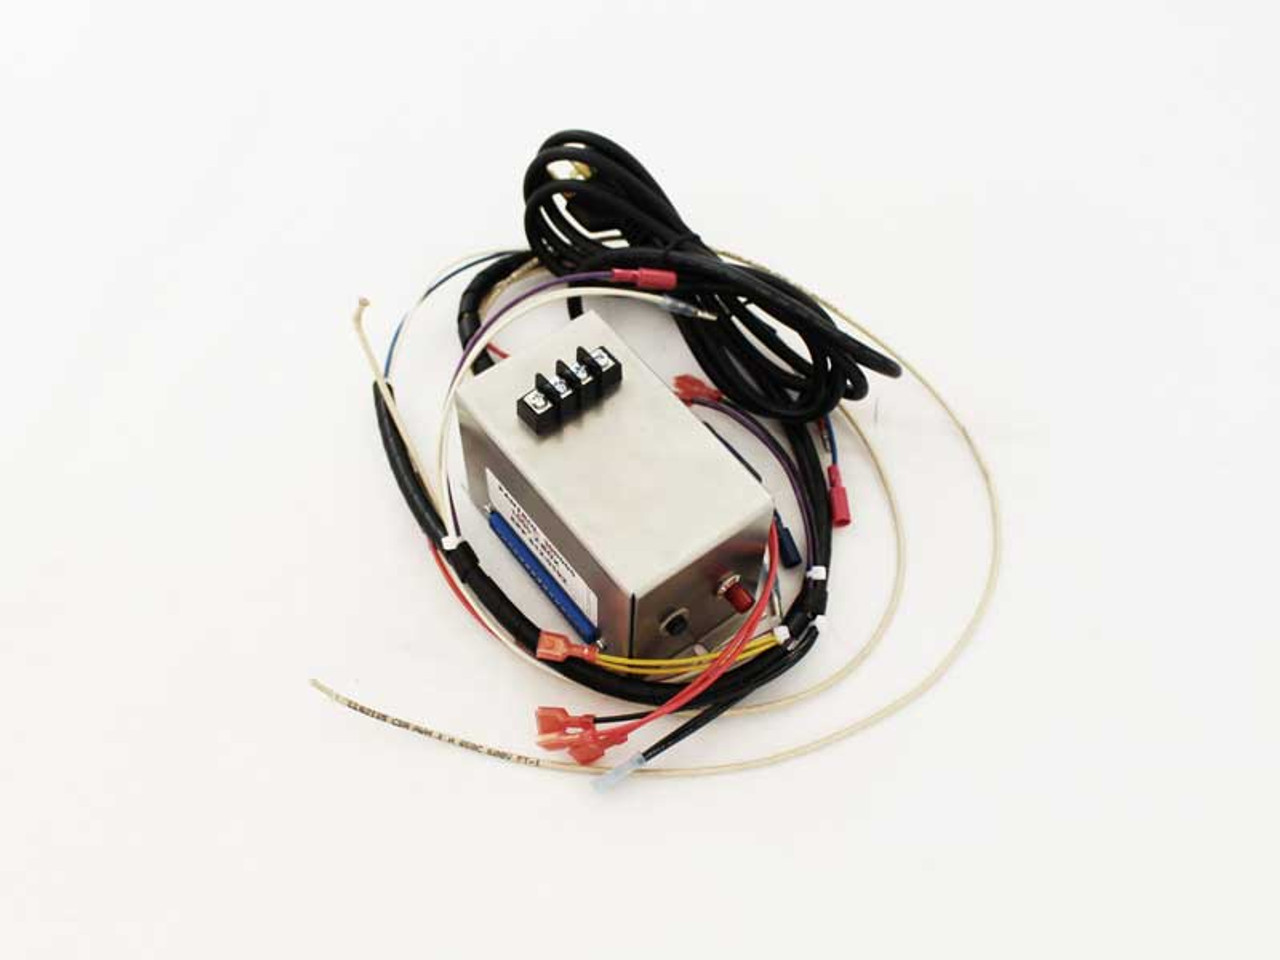 Junction Box W / Wiring Harness for the Quadrafire 1000 Pellet Stove on